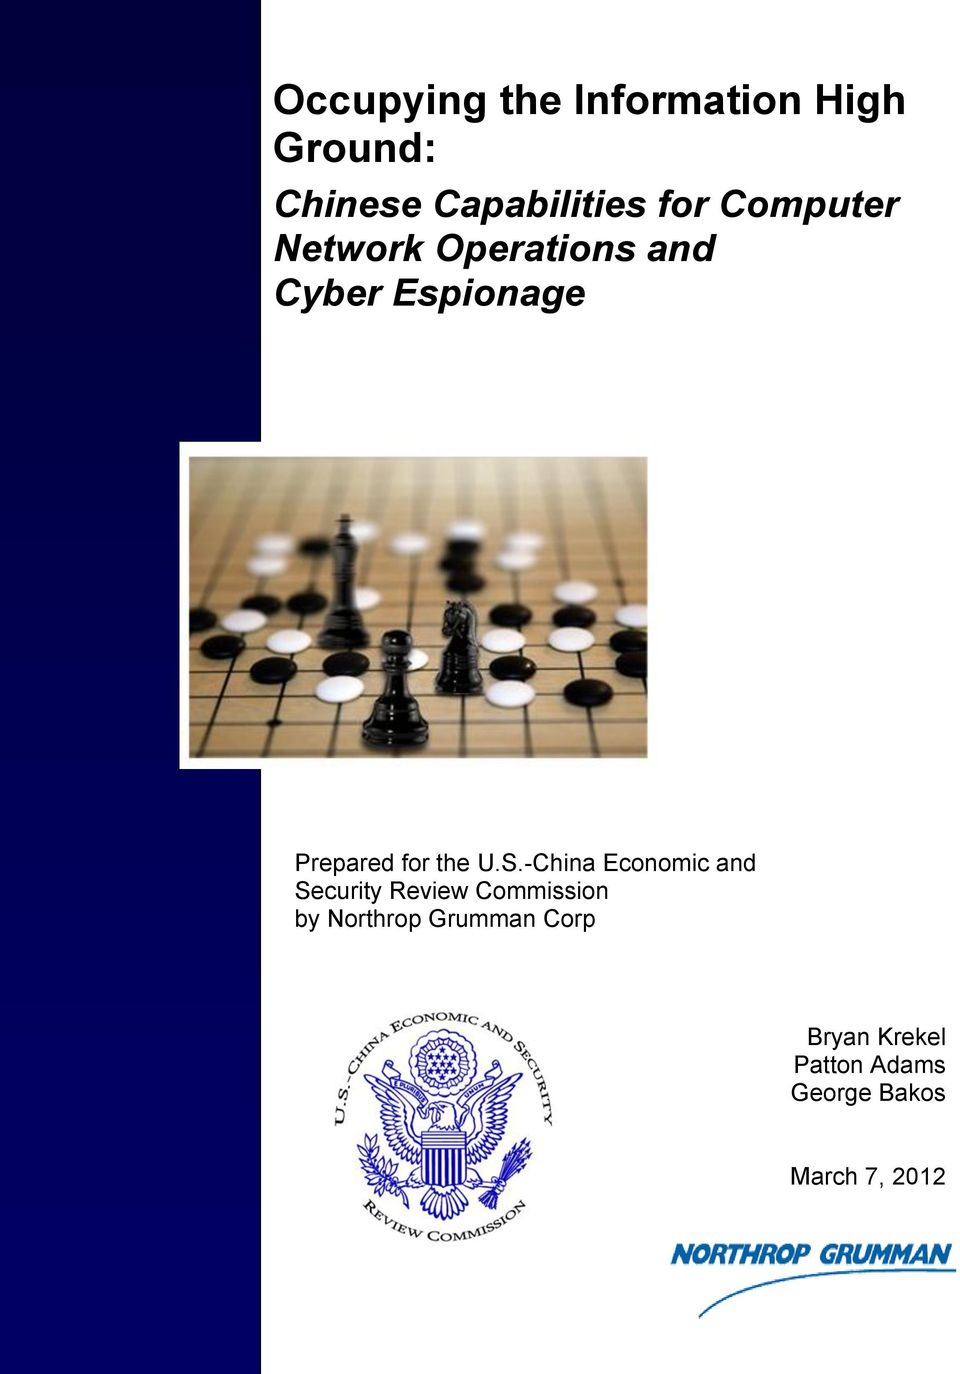 U.S.-China Economic and Security Review Commission by Northrop